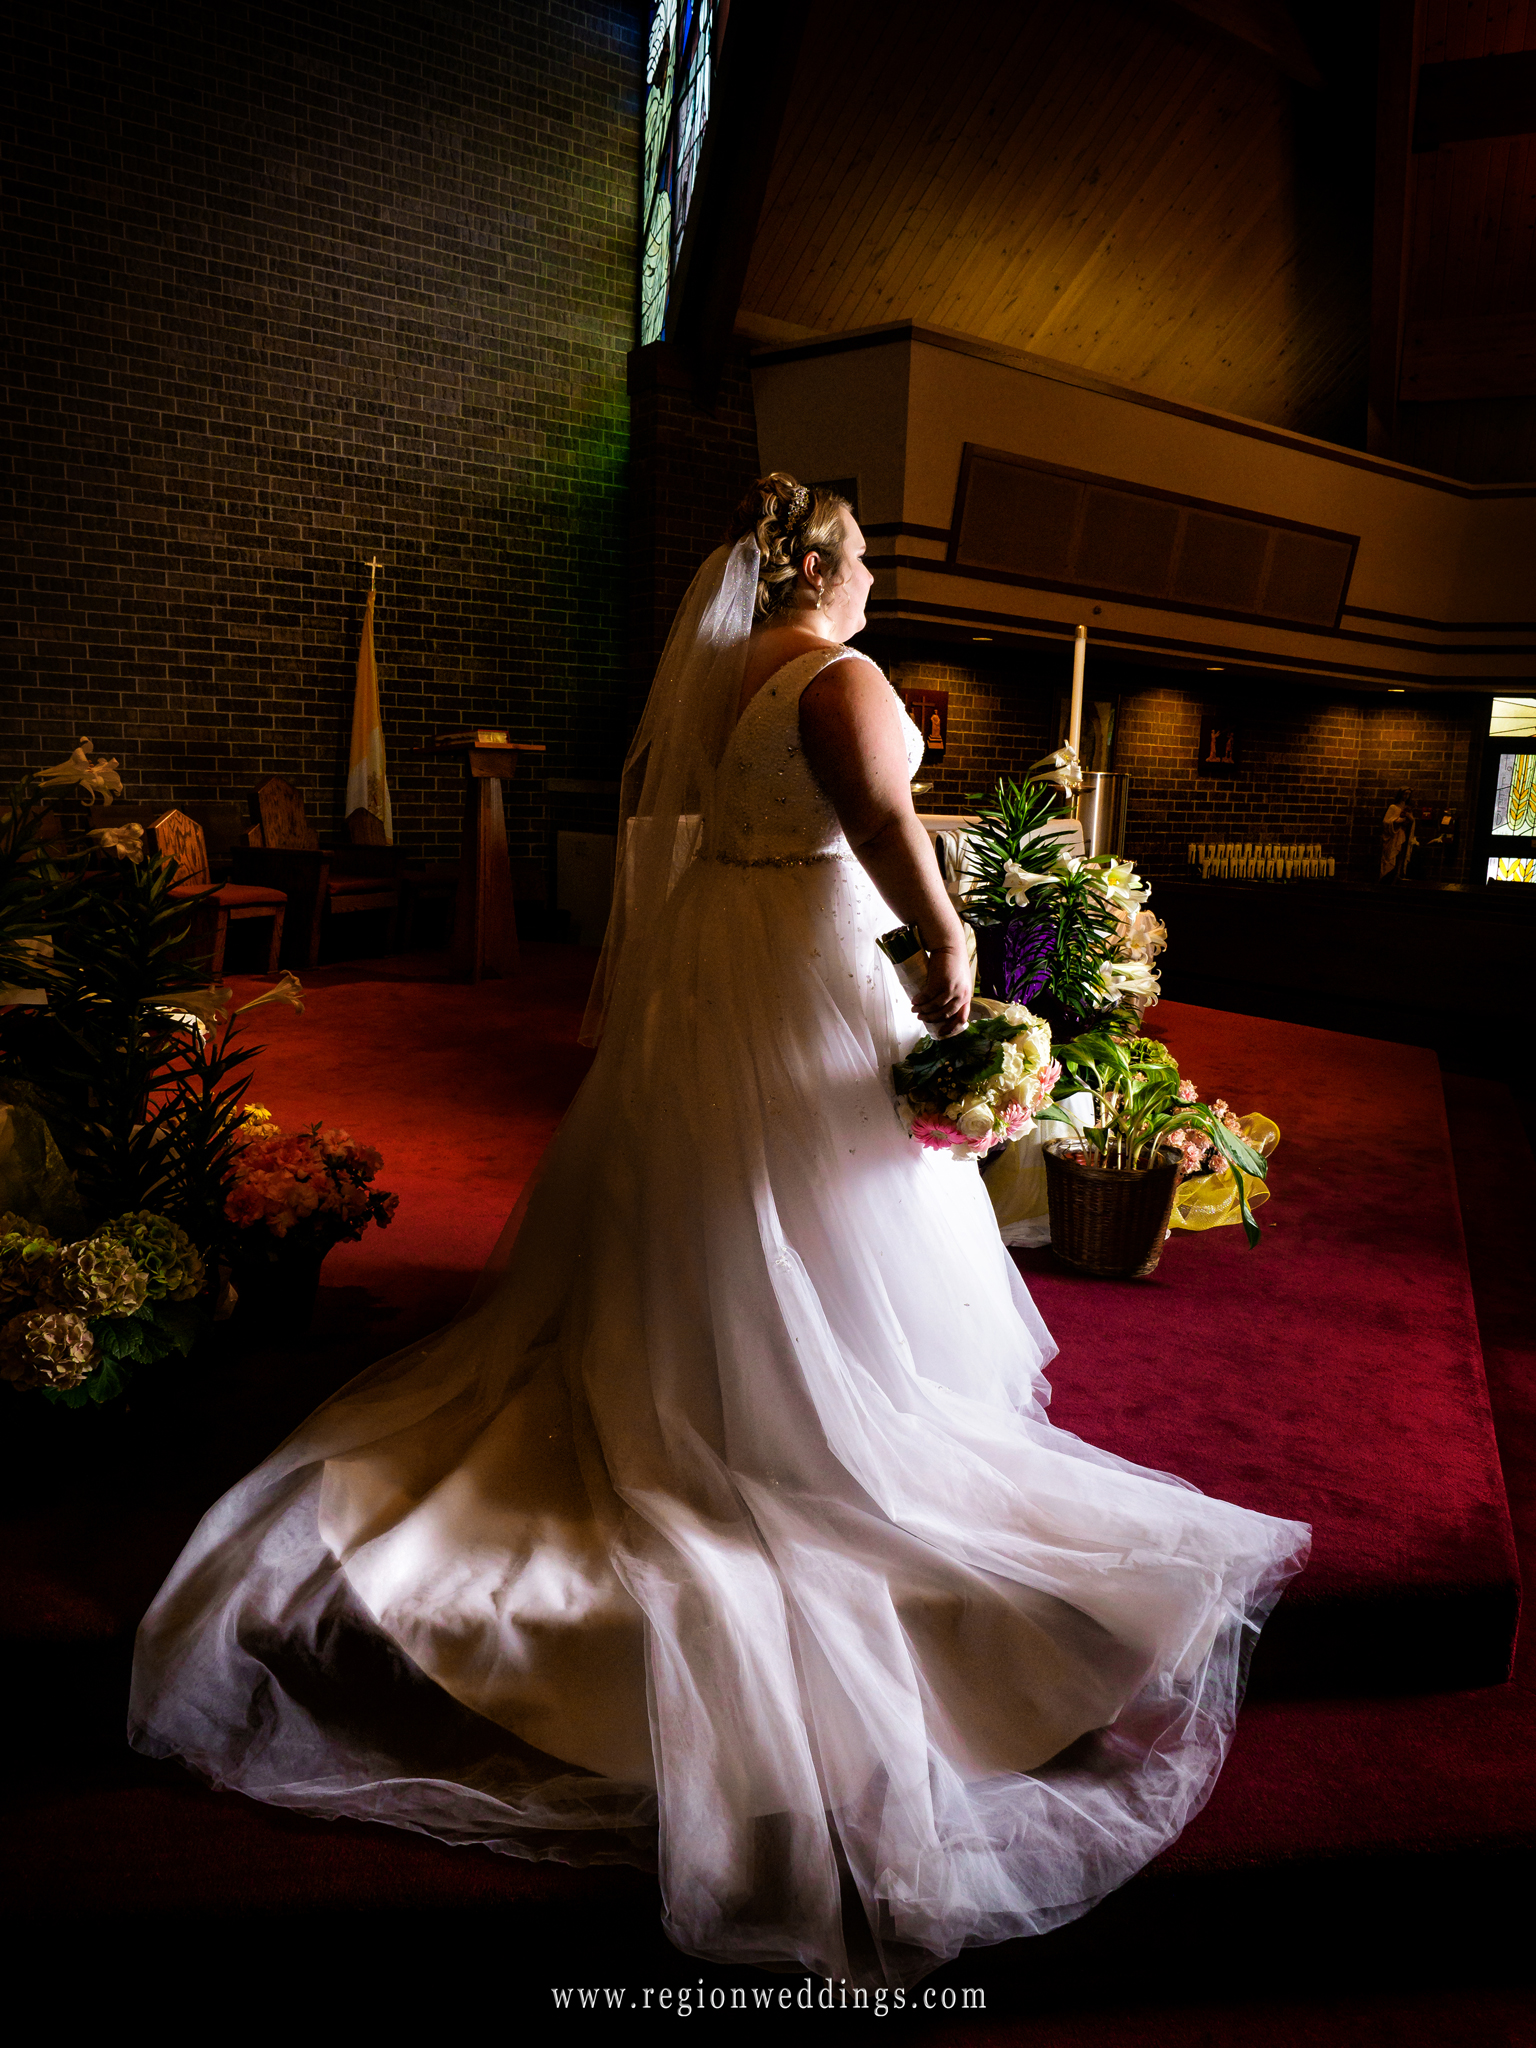 Beautiful bride on the altar at St. James the Less Catholic Church.